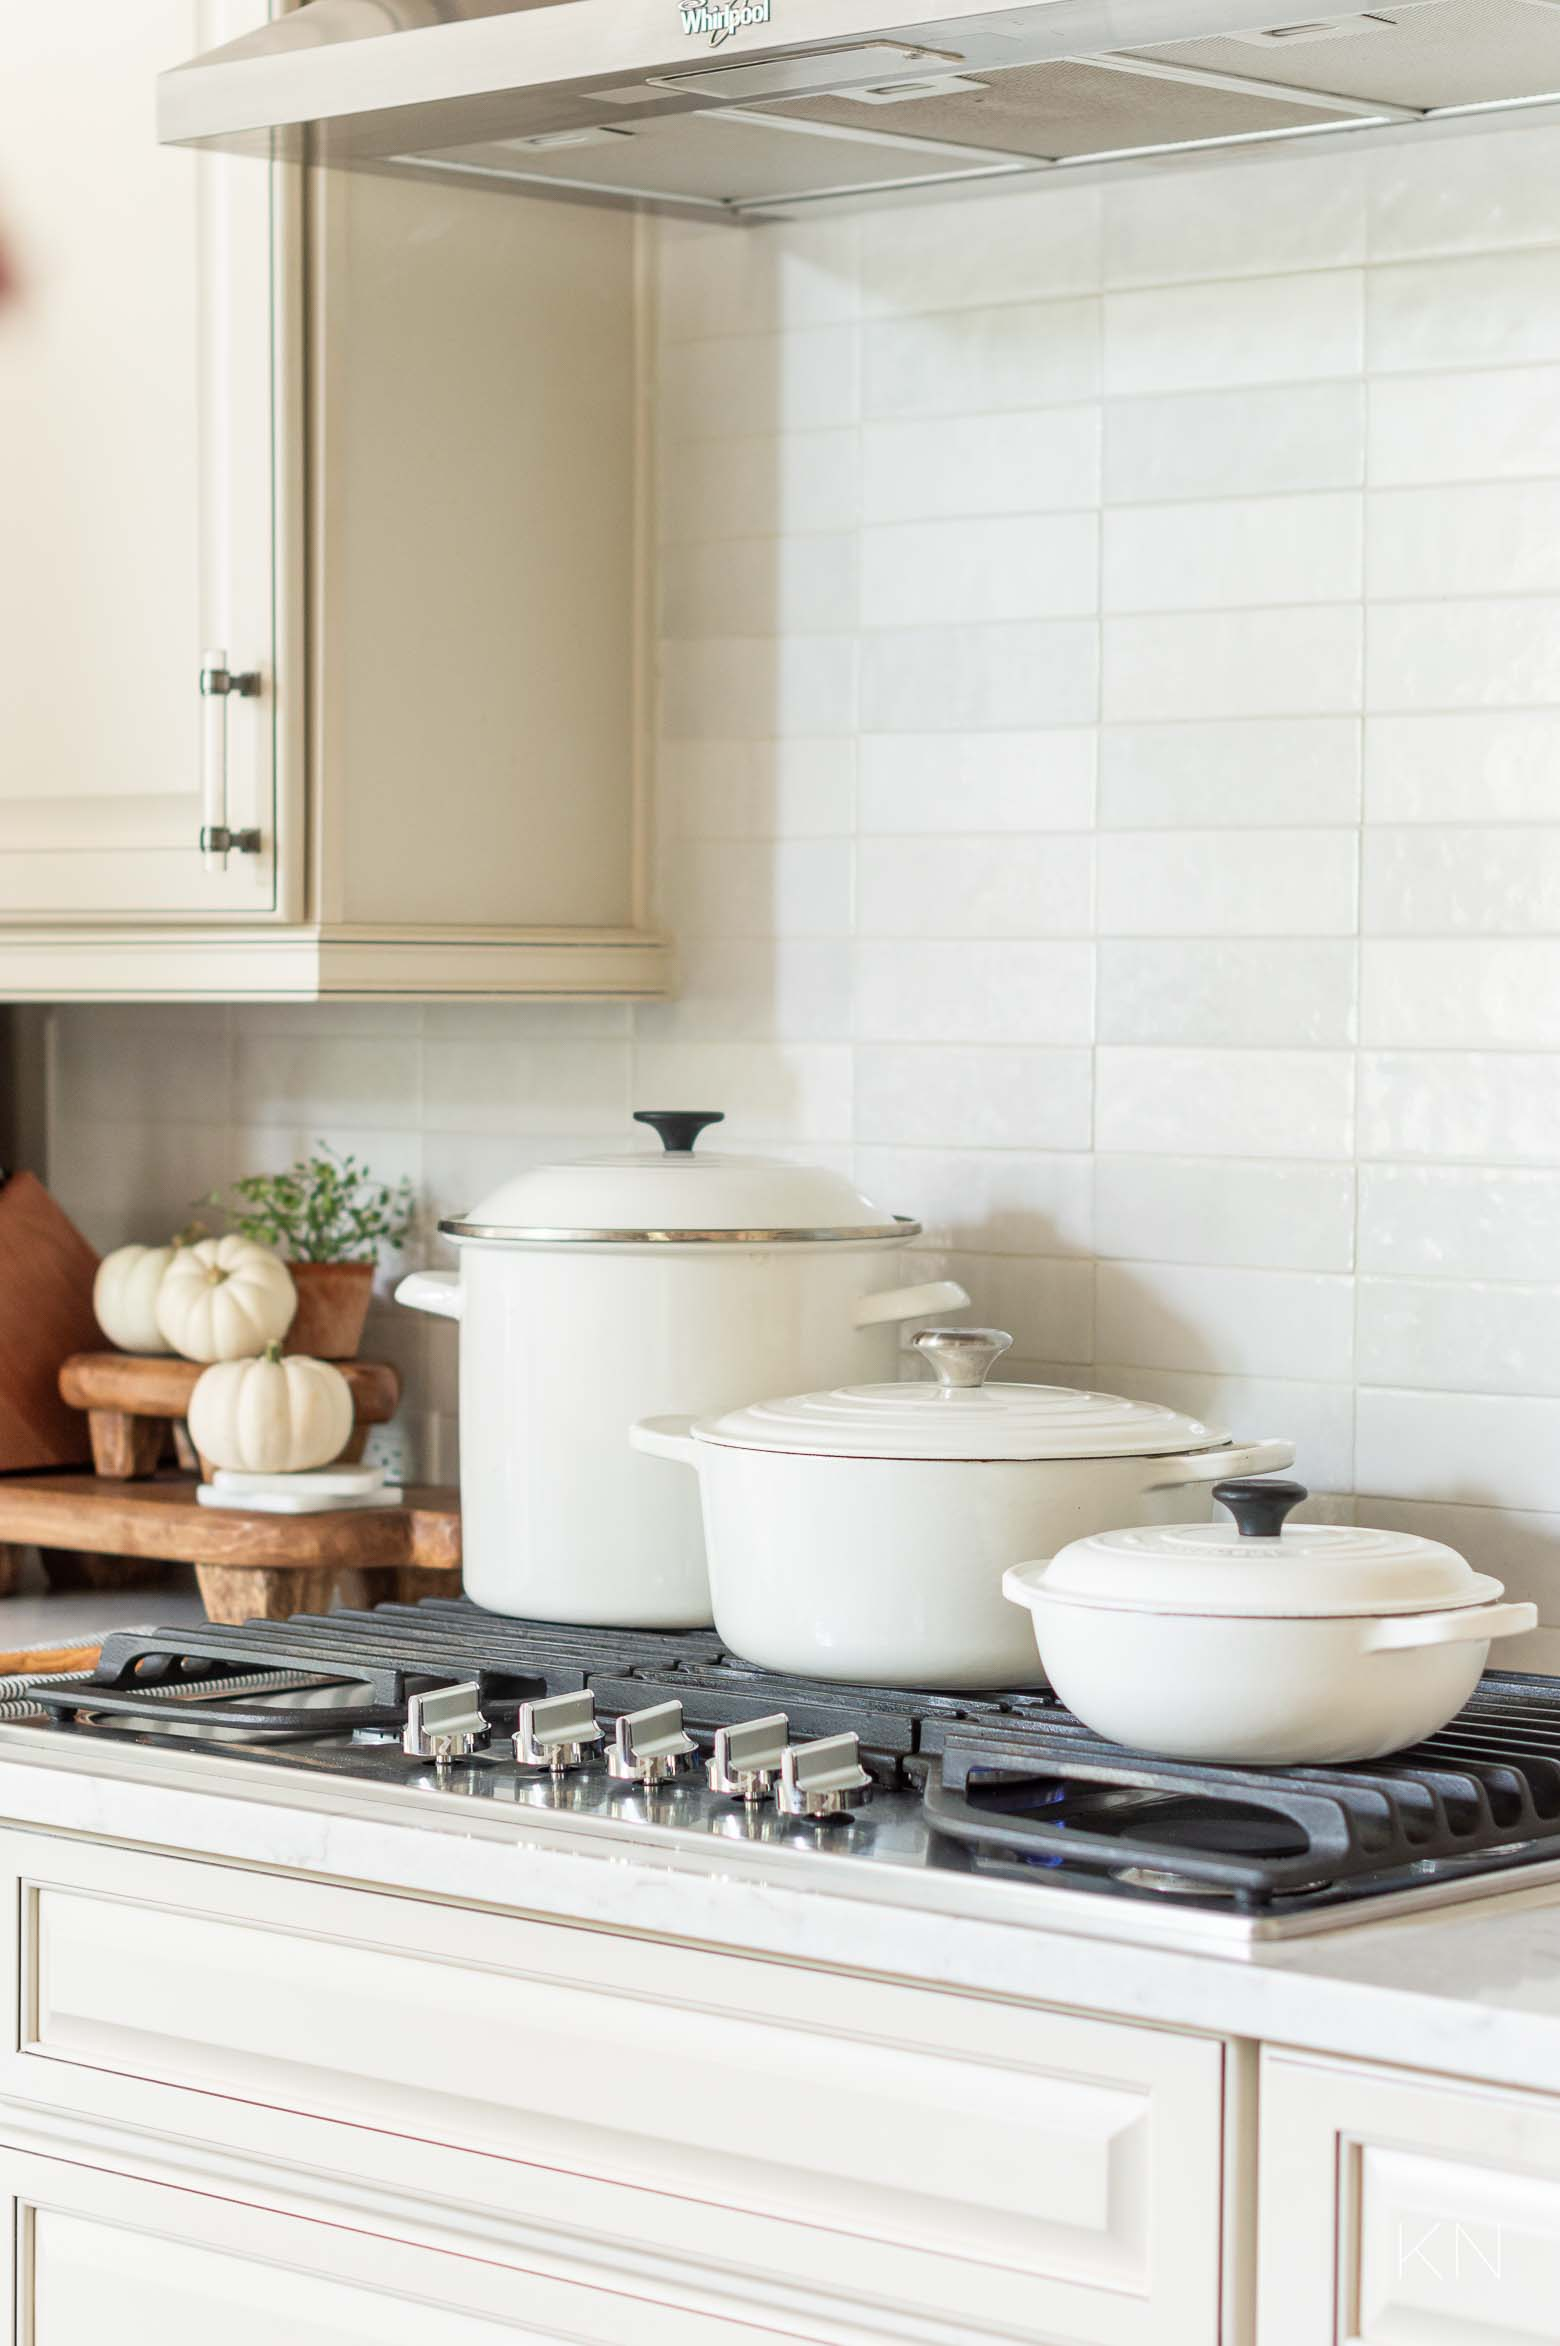 Le Creuset Styled in a Neutral Kitchen